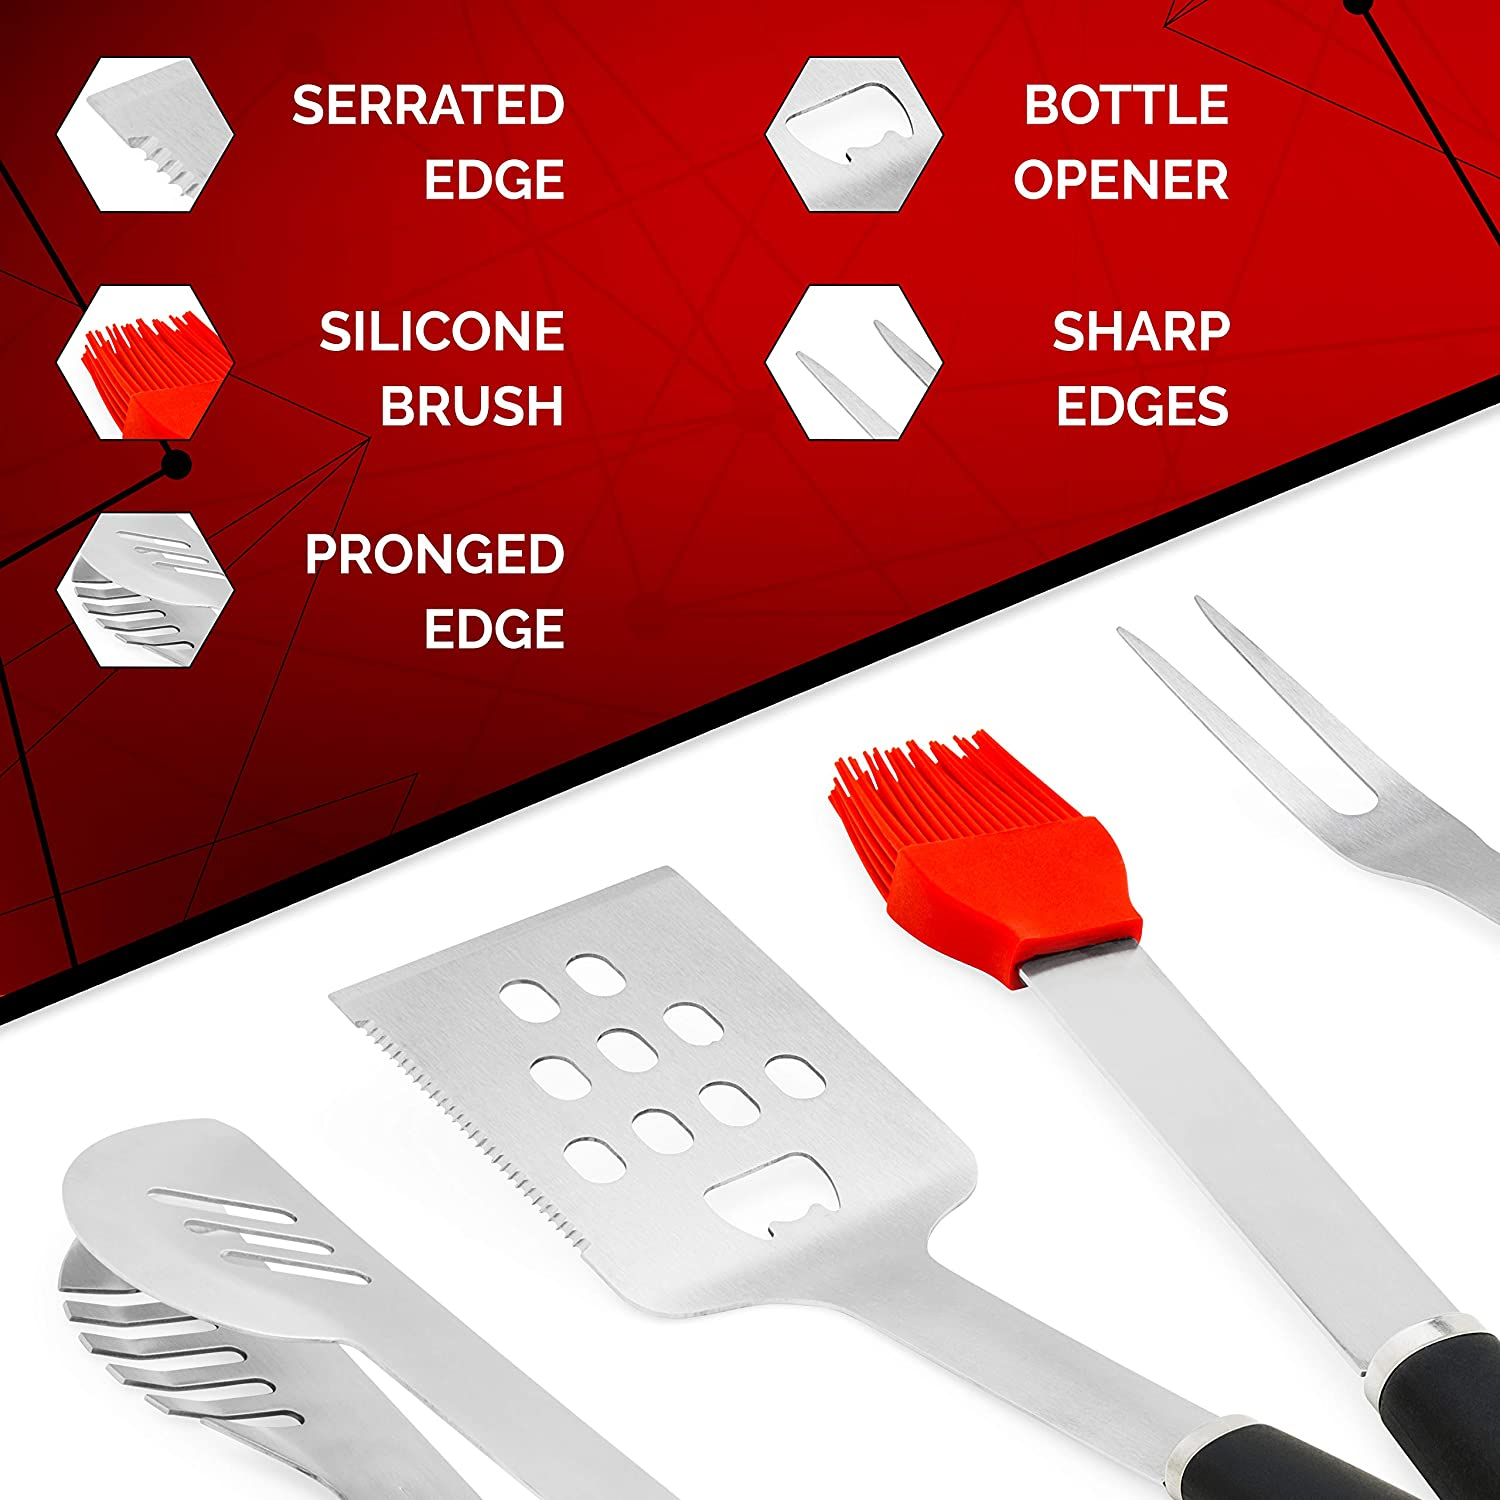 5 Piece BBQ Accessories Set Includes Tongs Spatula Fork Silicon Basting Brush and Instant Read Digital Ultimate BBQ Grill Tools Set with Meat Thermometer /& 4 Stainless Steel Grilling Accessories